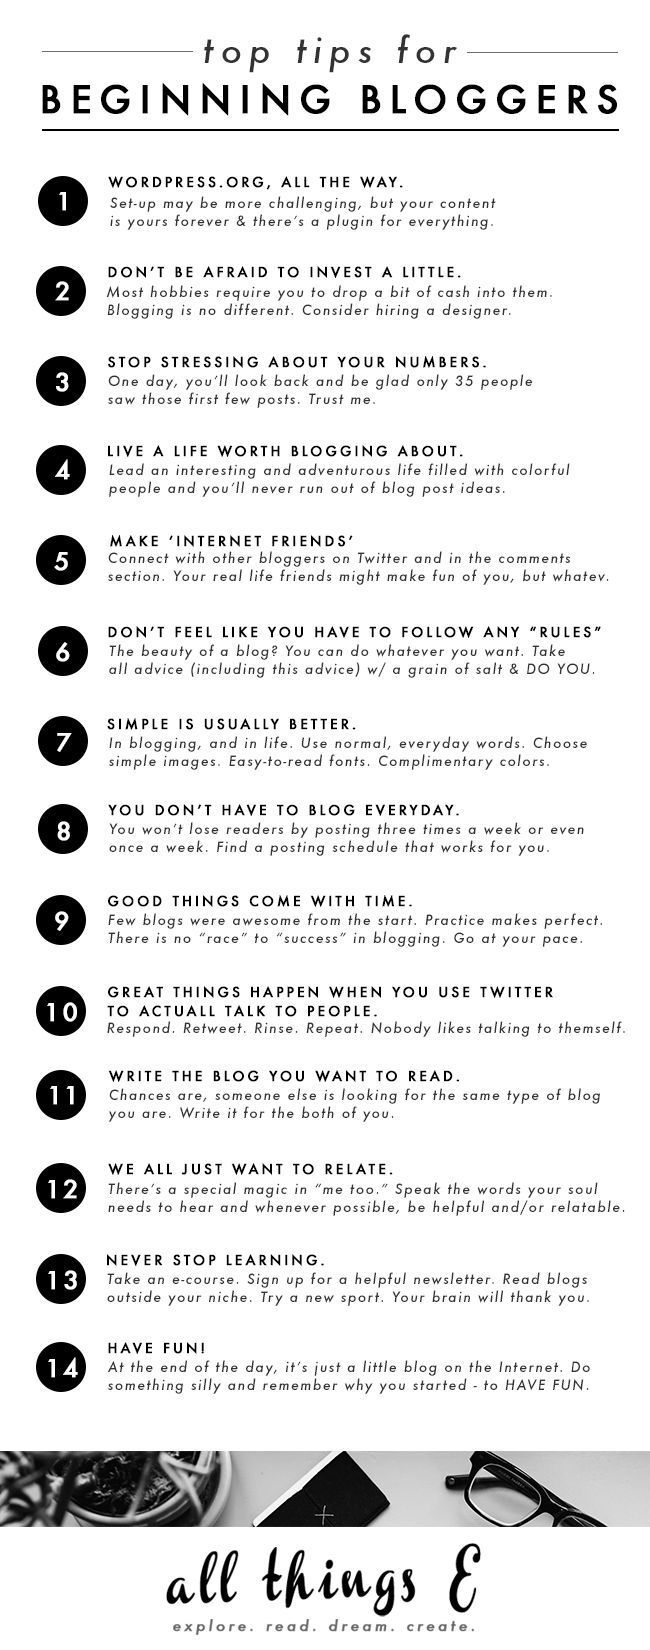 Top Tips for Beginning Bloggers| blogging tips, blogging ideas, #blog #blogger #blogtips